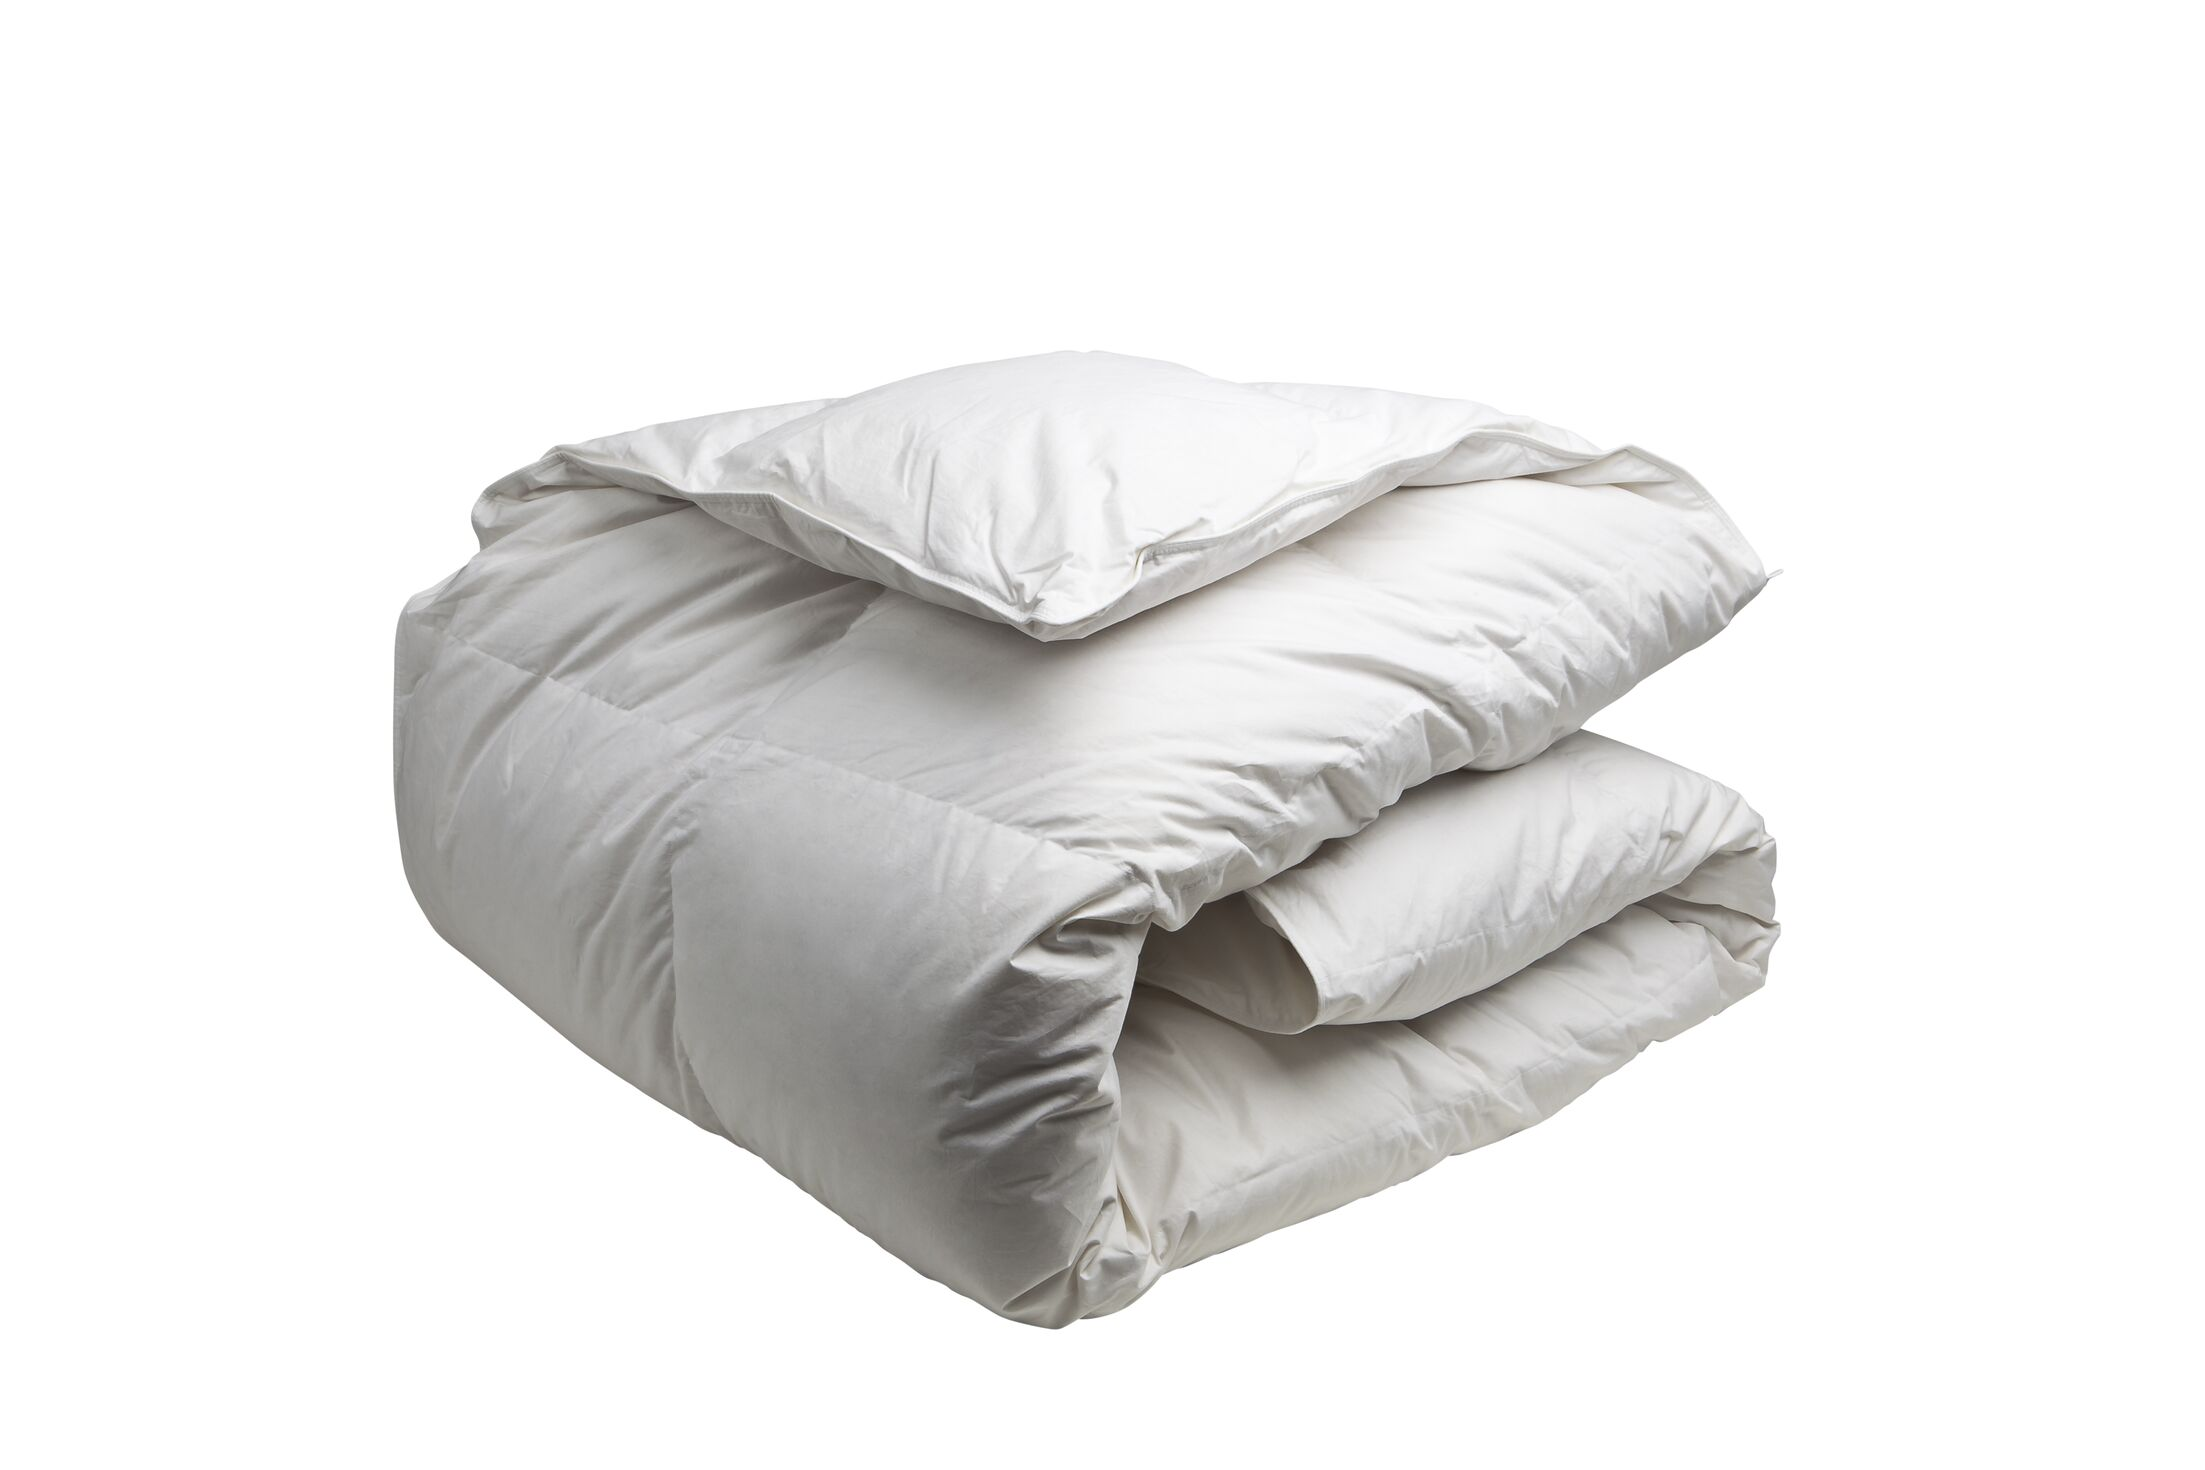 Down Duvet Insert Size: King, Weight: 35 oz, Fill Warmth: Regular